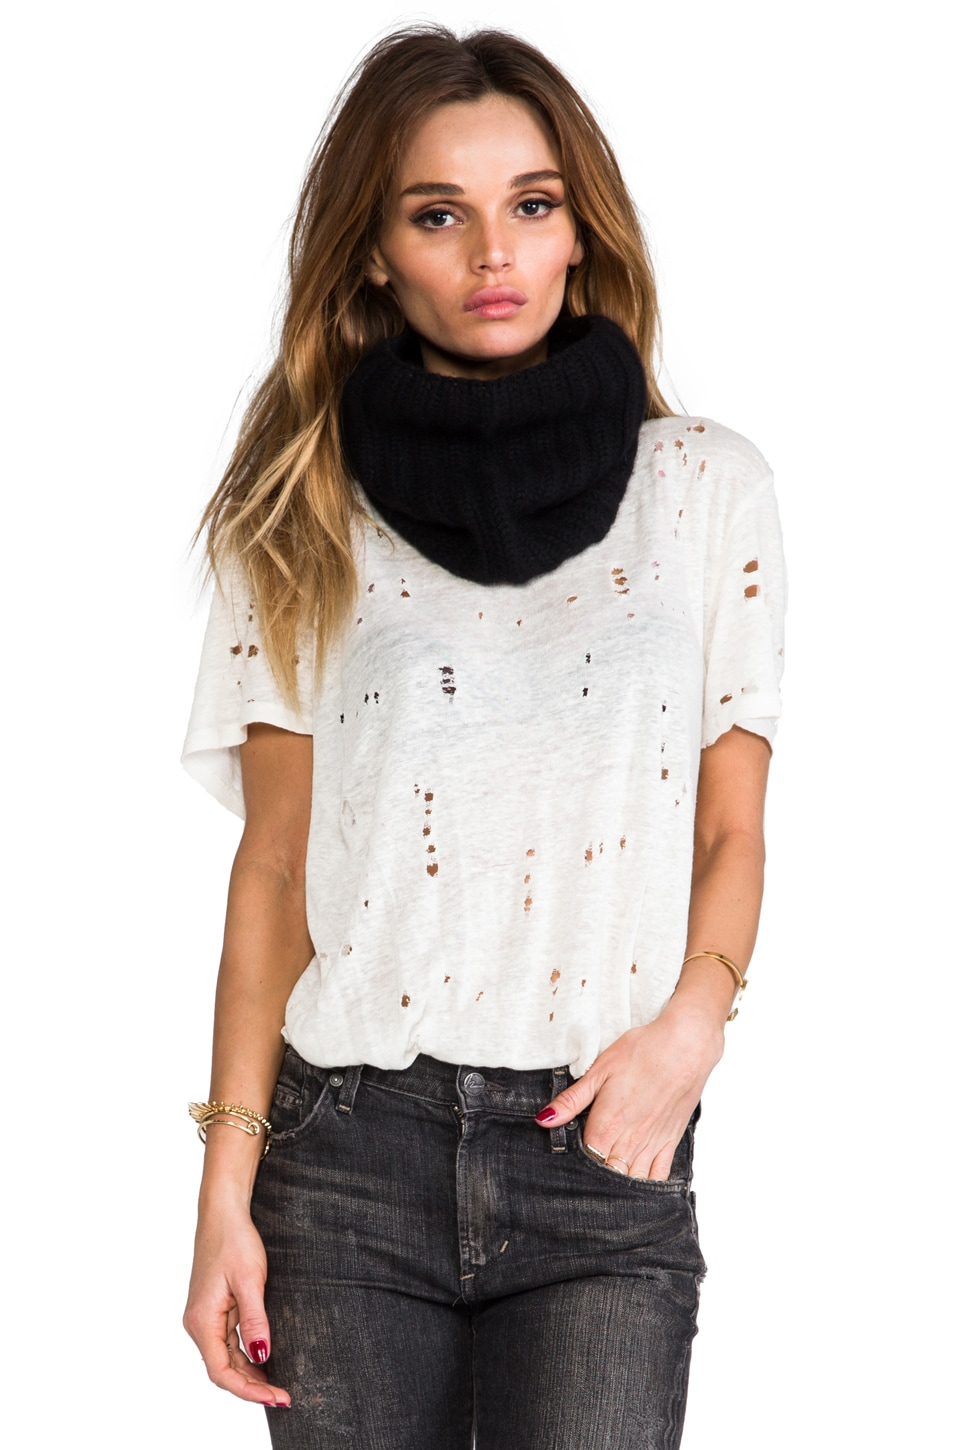 DemyLee Cashmere Chunky Rib Eternity Scarf in Black